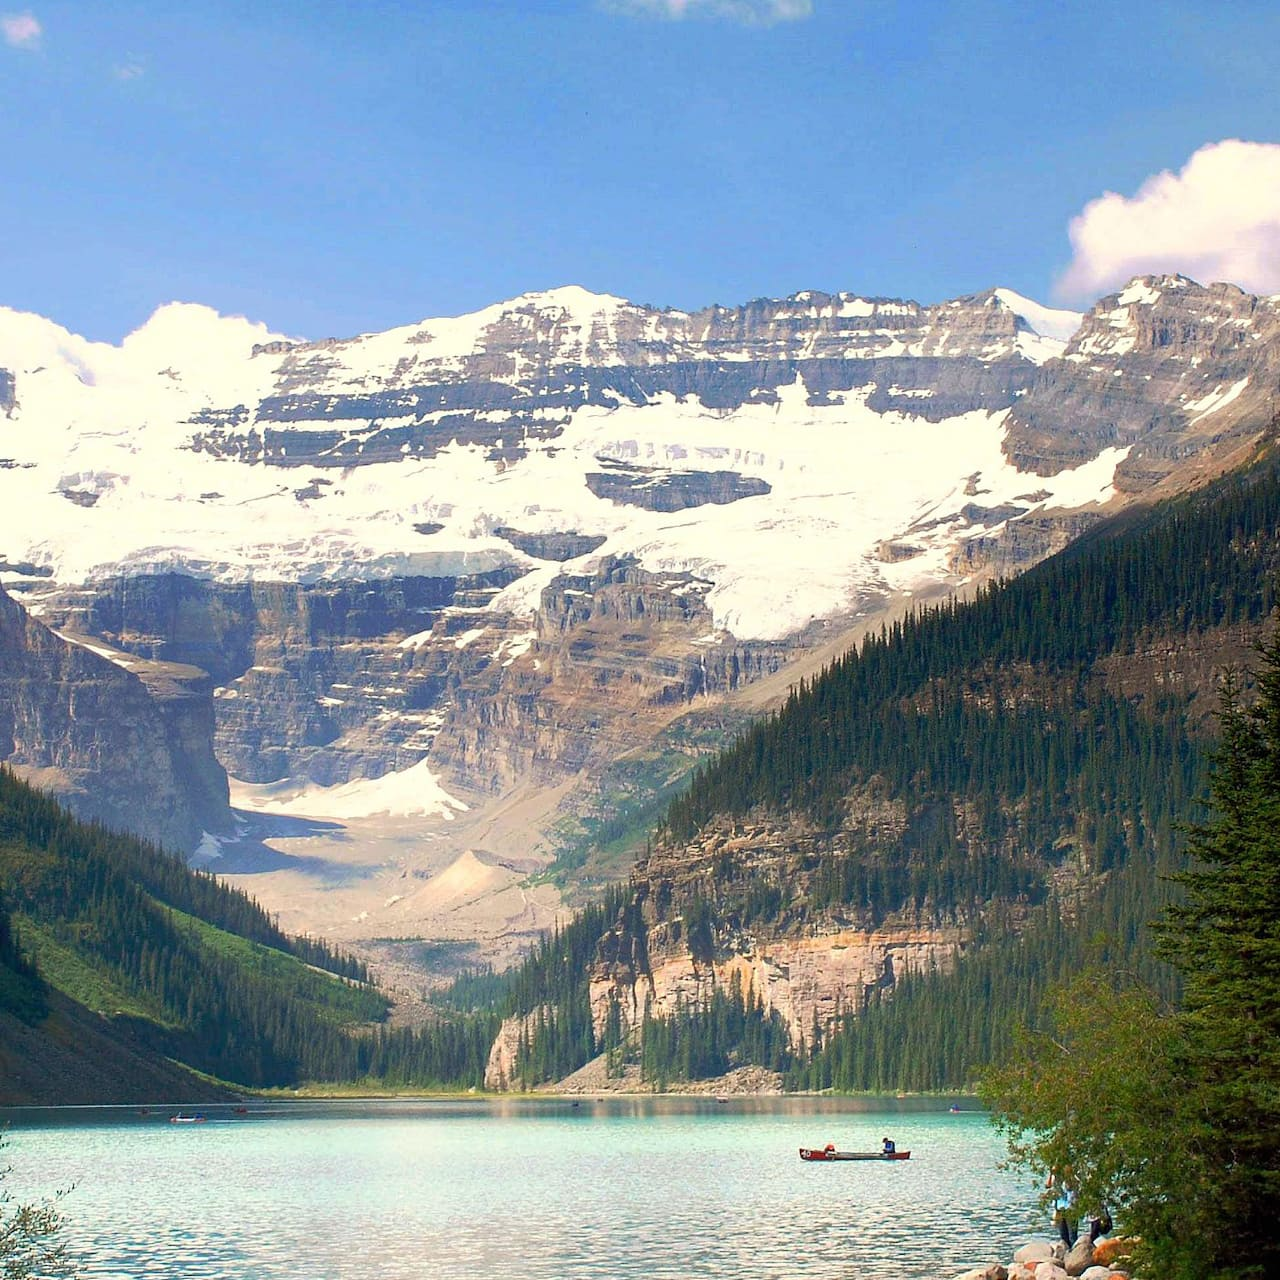 A lone canoe sits on Lake Louise, surrounded by snow-capped mountains